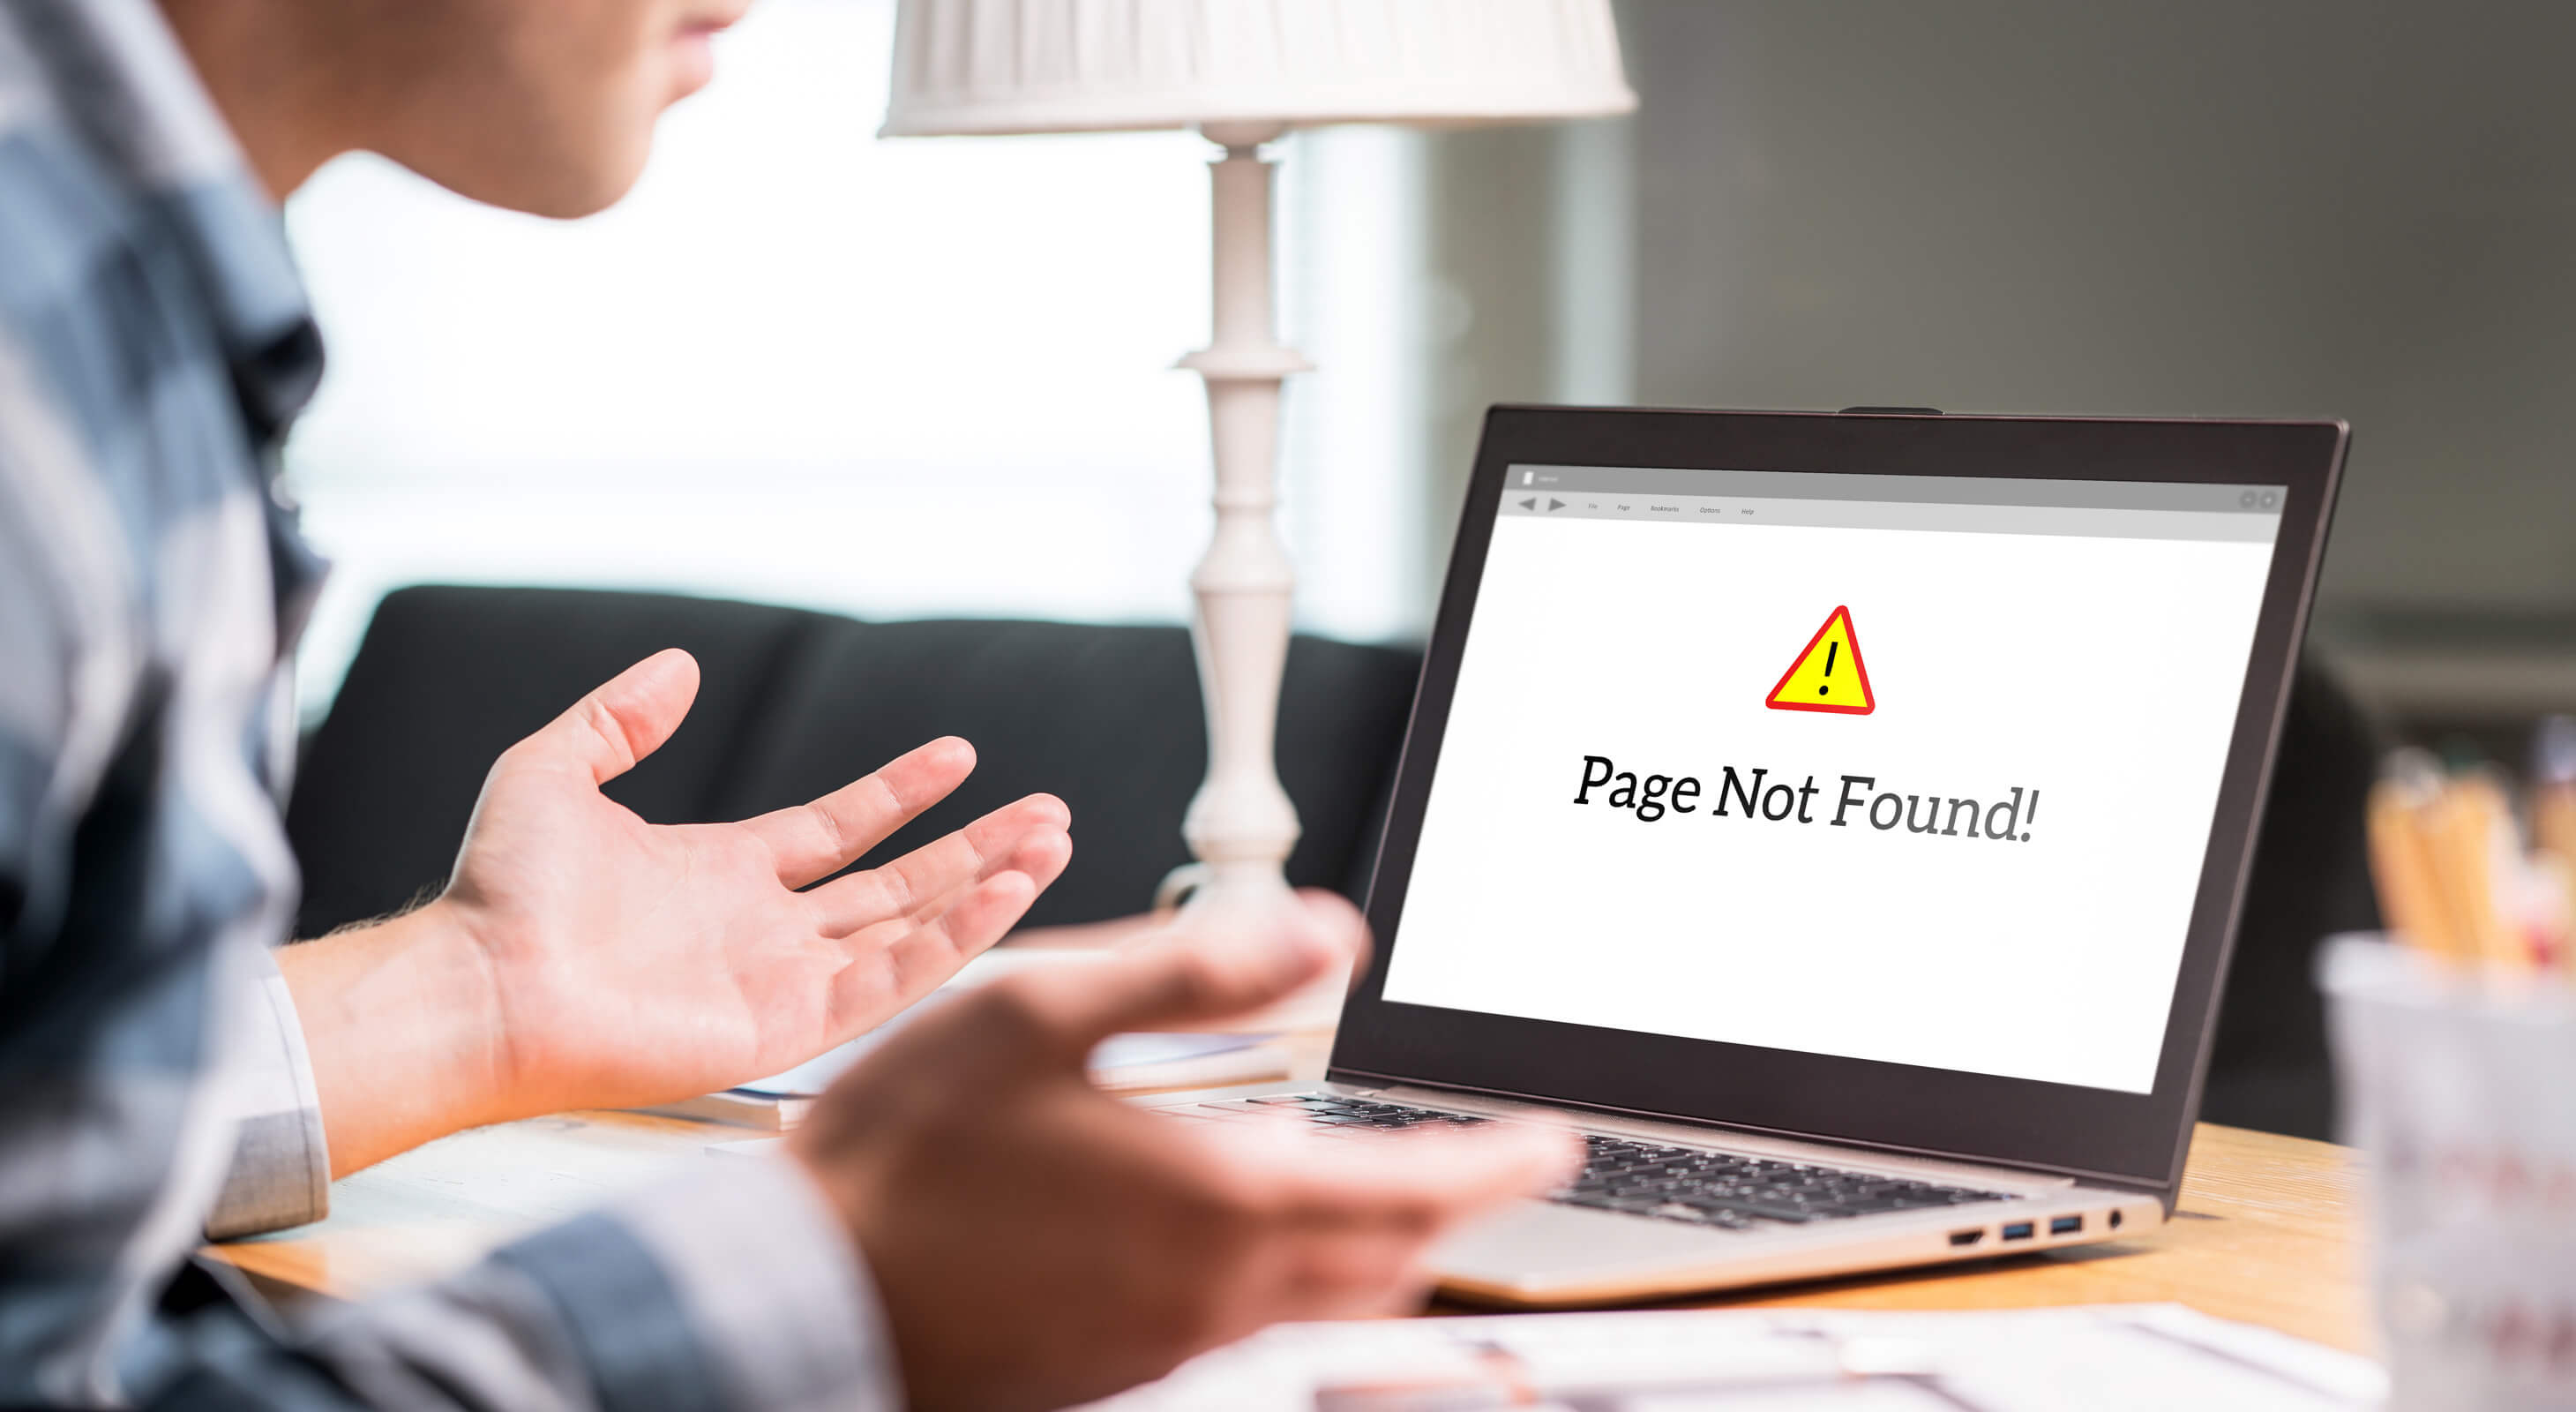 Frustrated person looking at screen displaying page not found